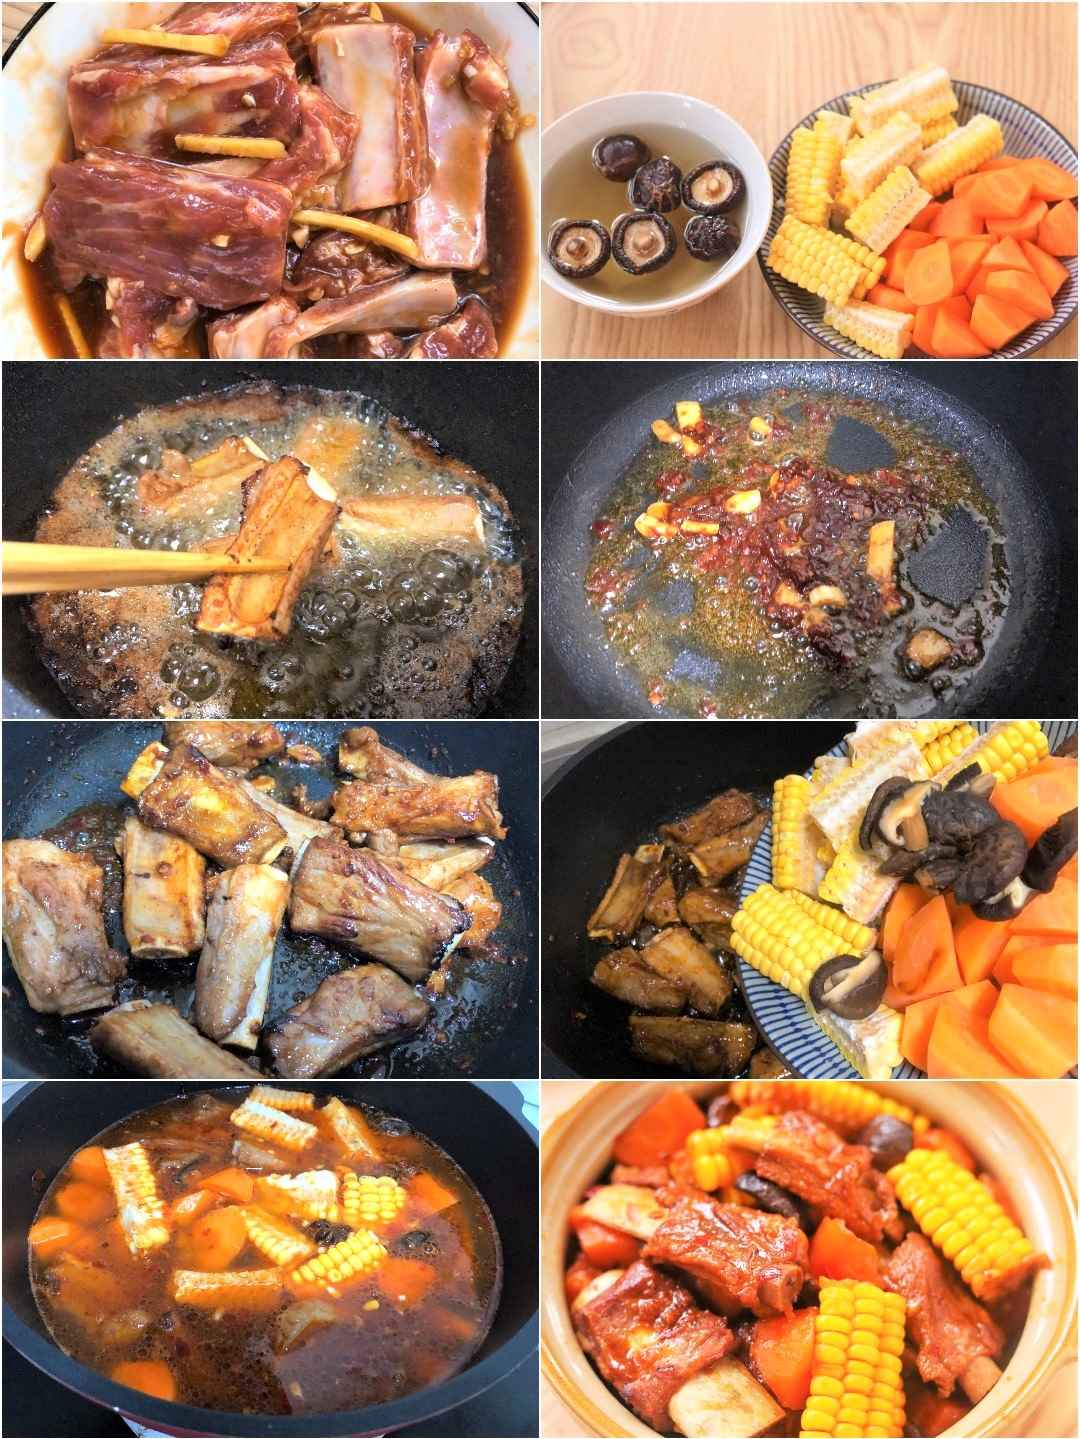 stewed pork ribs recipe with pictures step by step